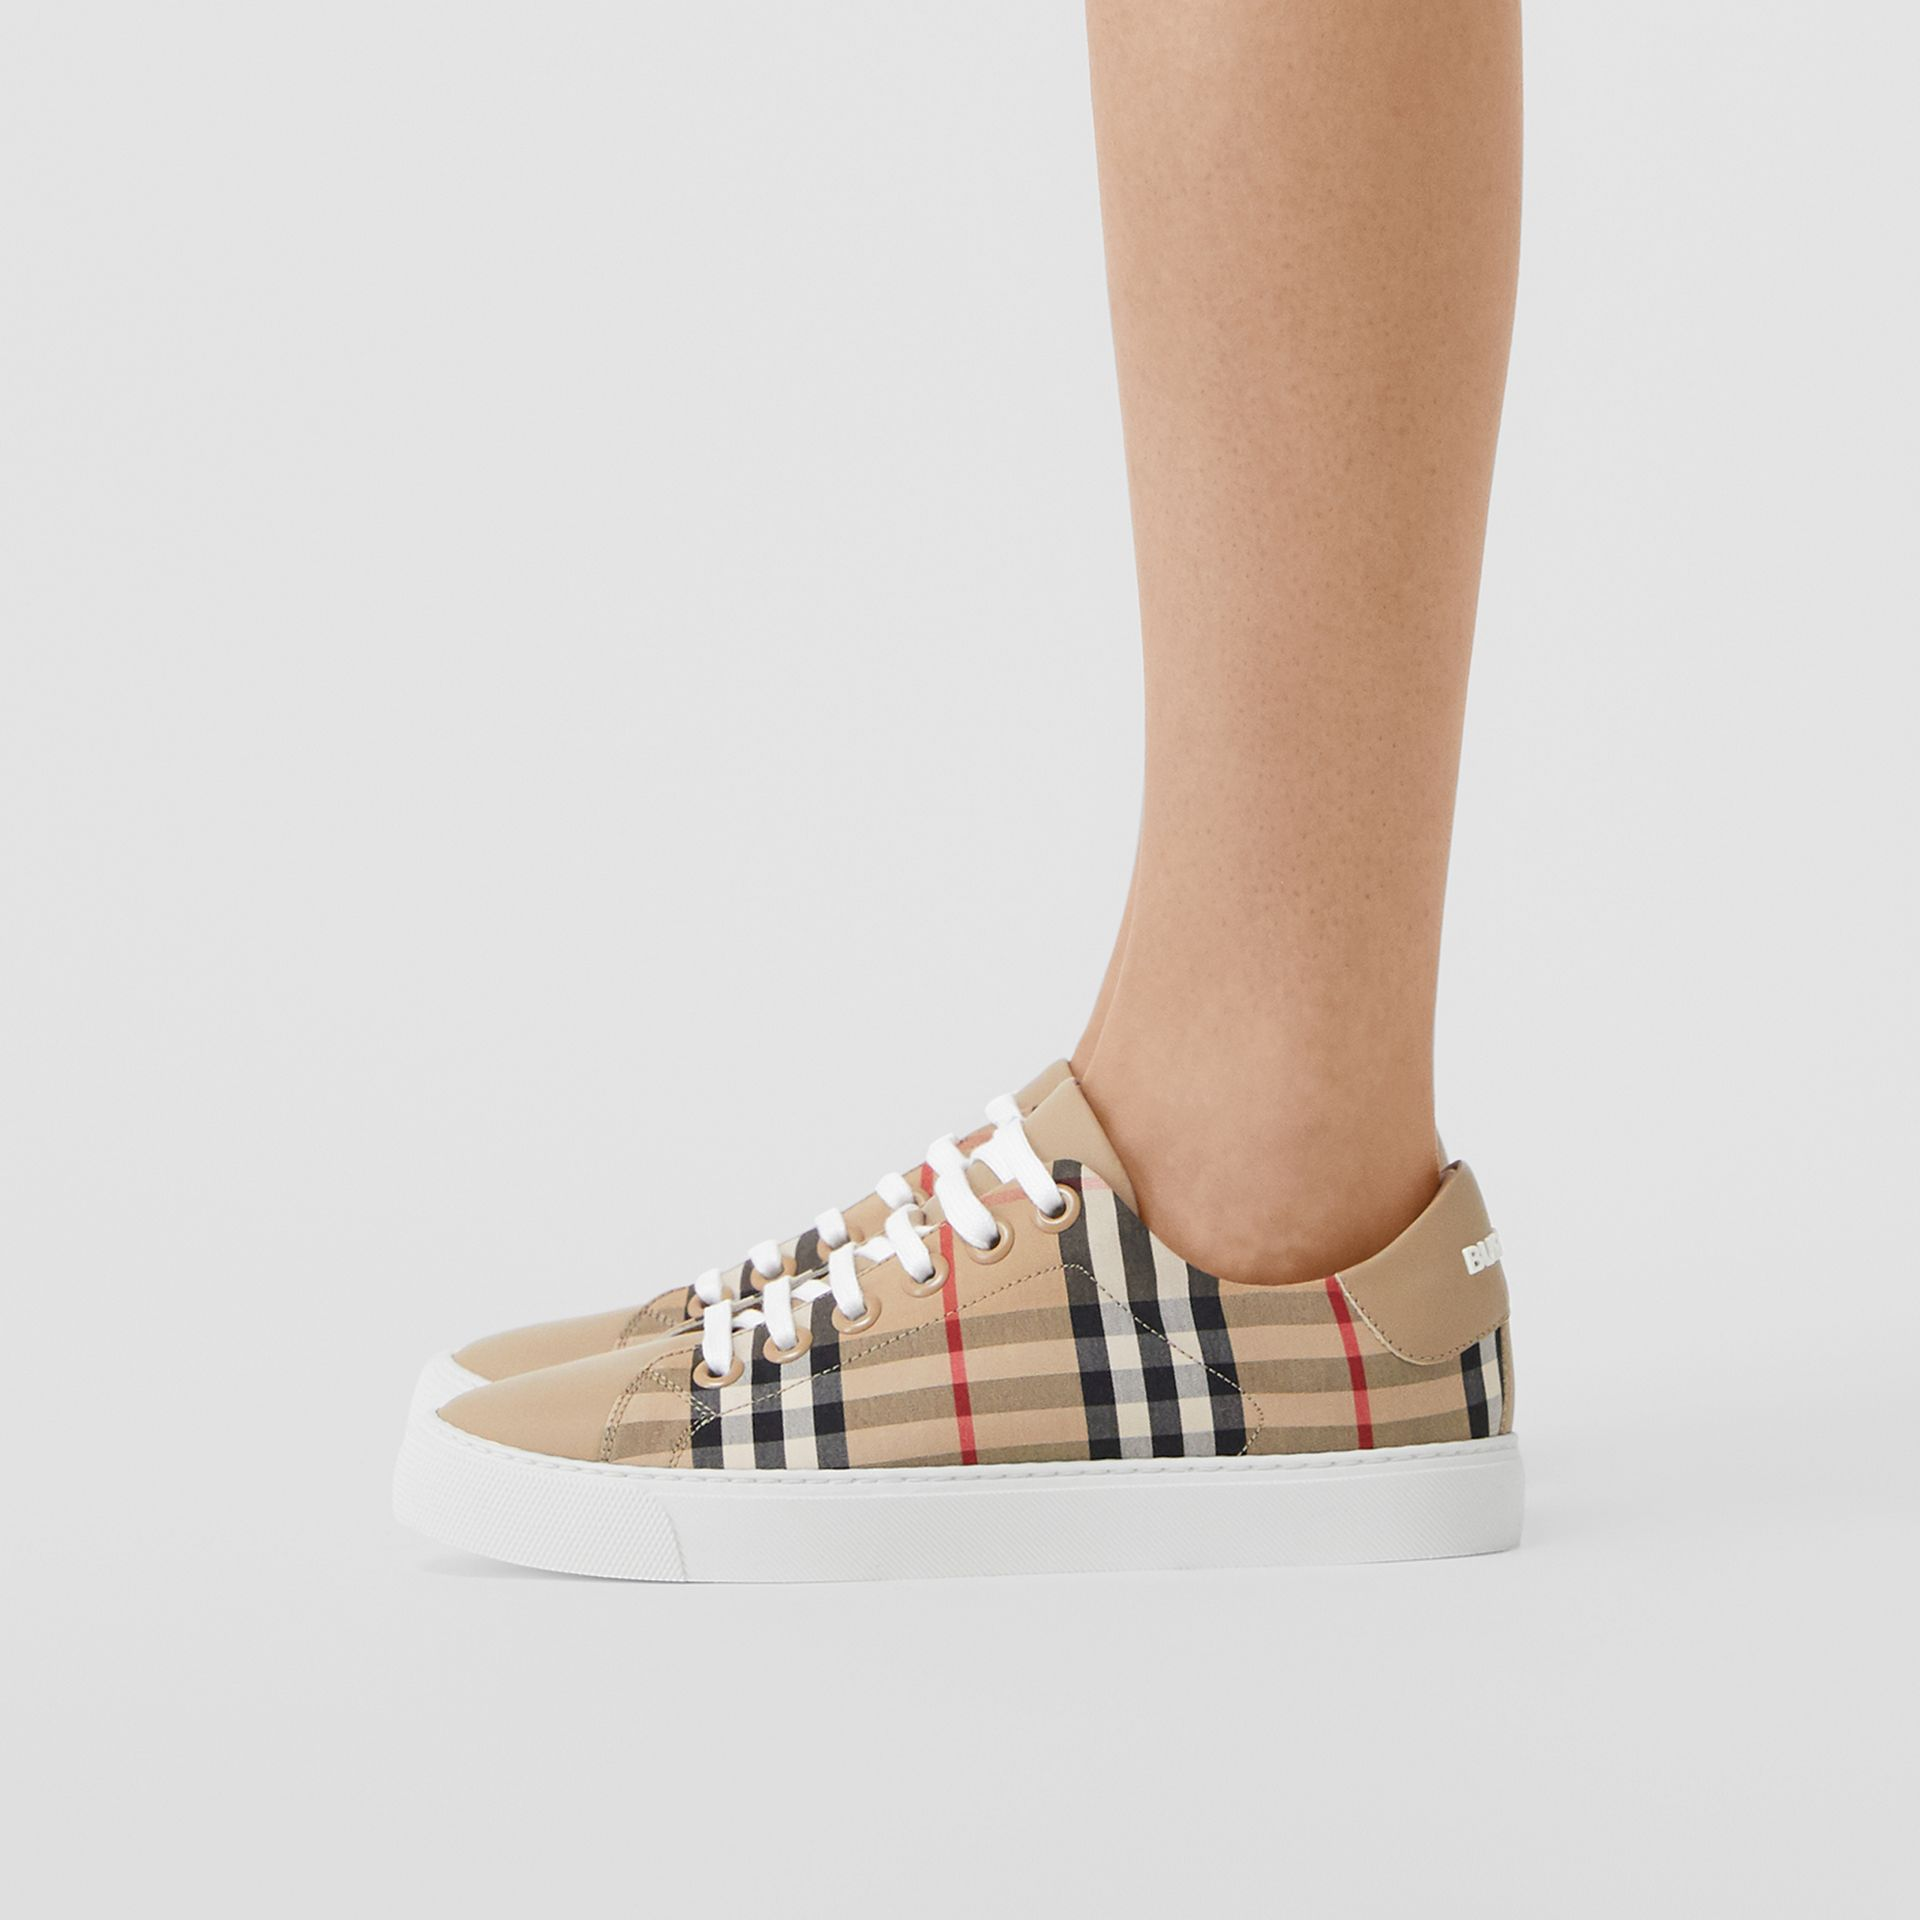 Vintage Check and Leather Sneakers in Archive Beige - Women | Burberry United States - gallery image 2